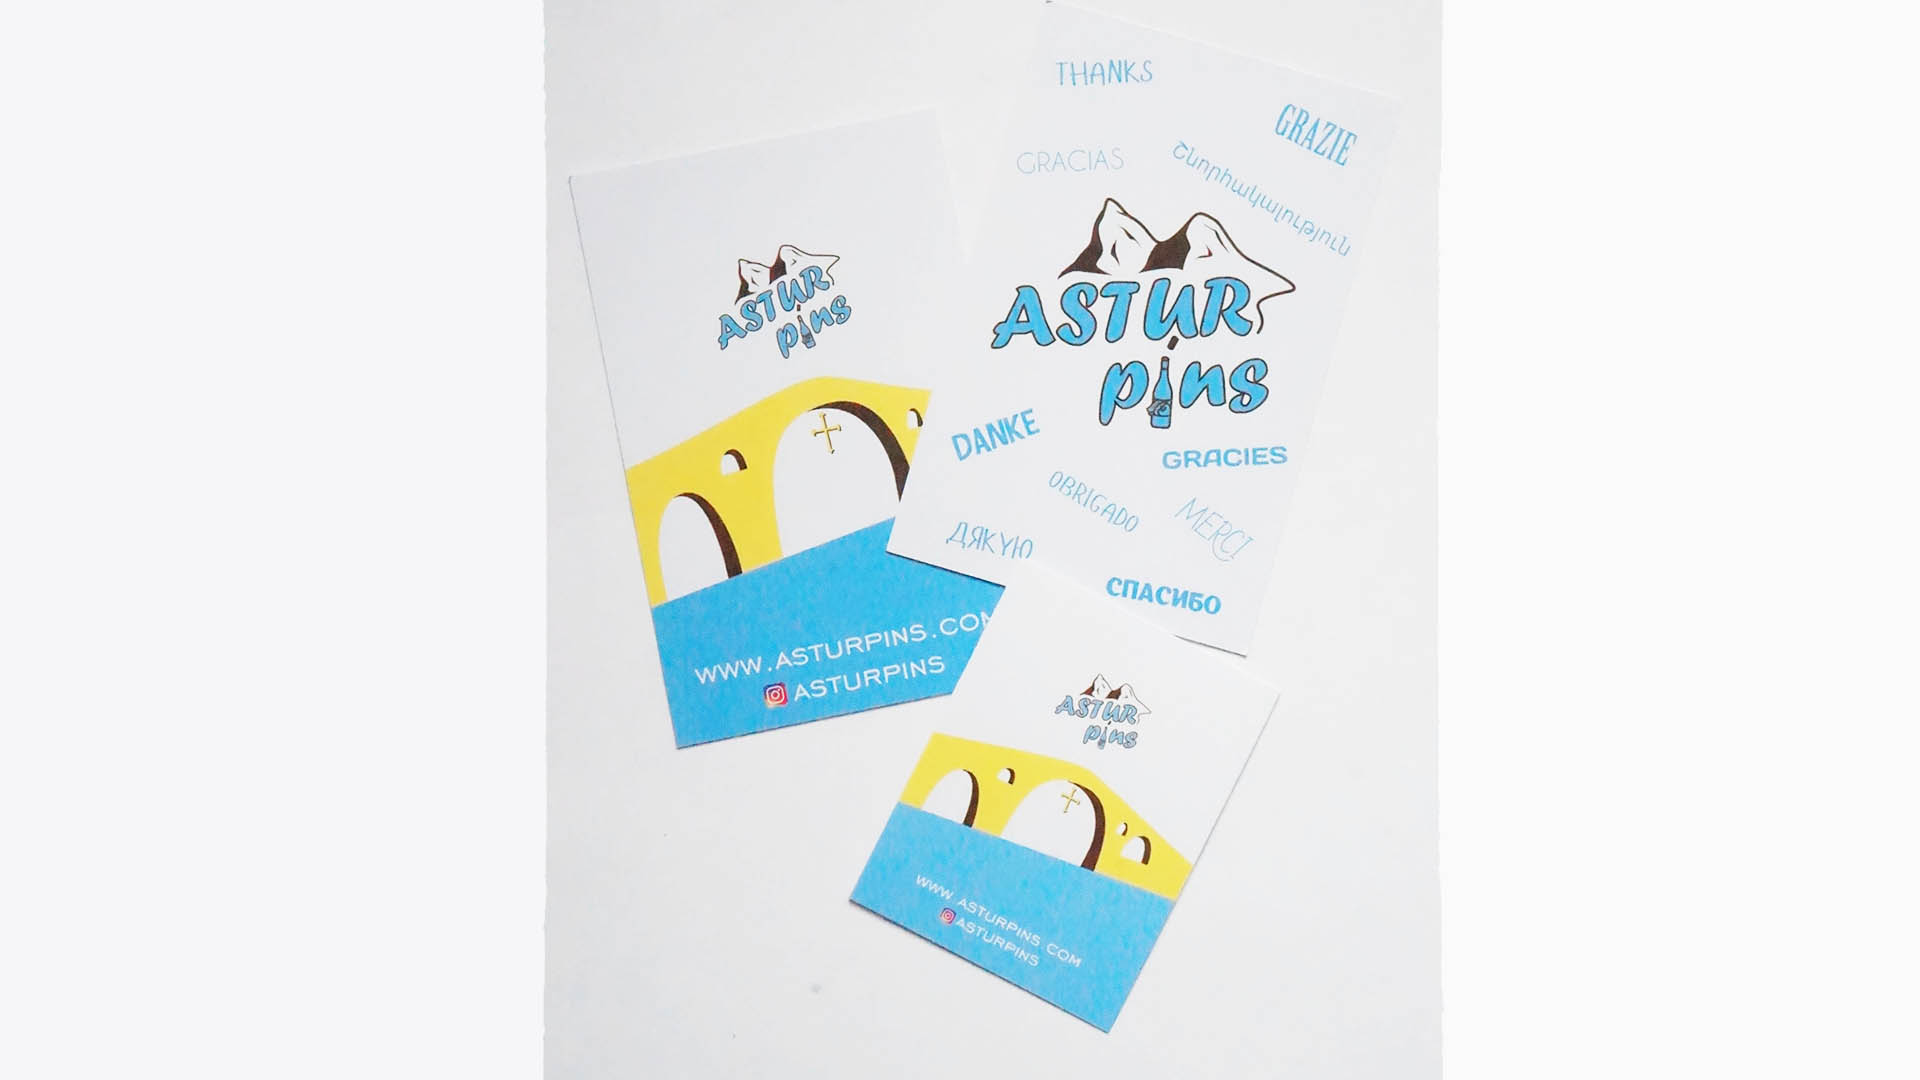 astur pins cards